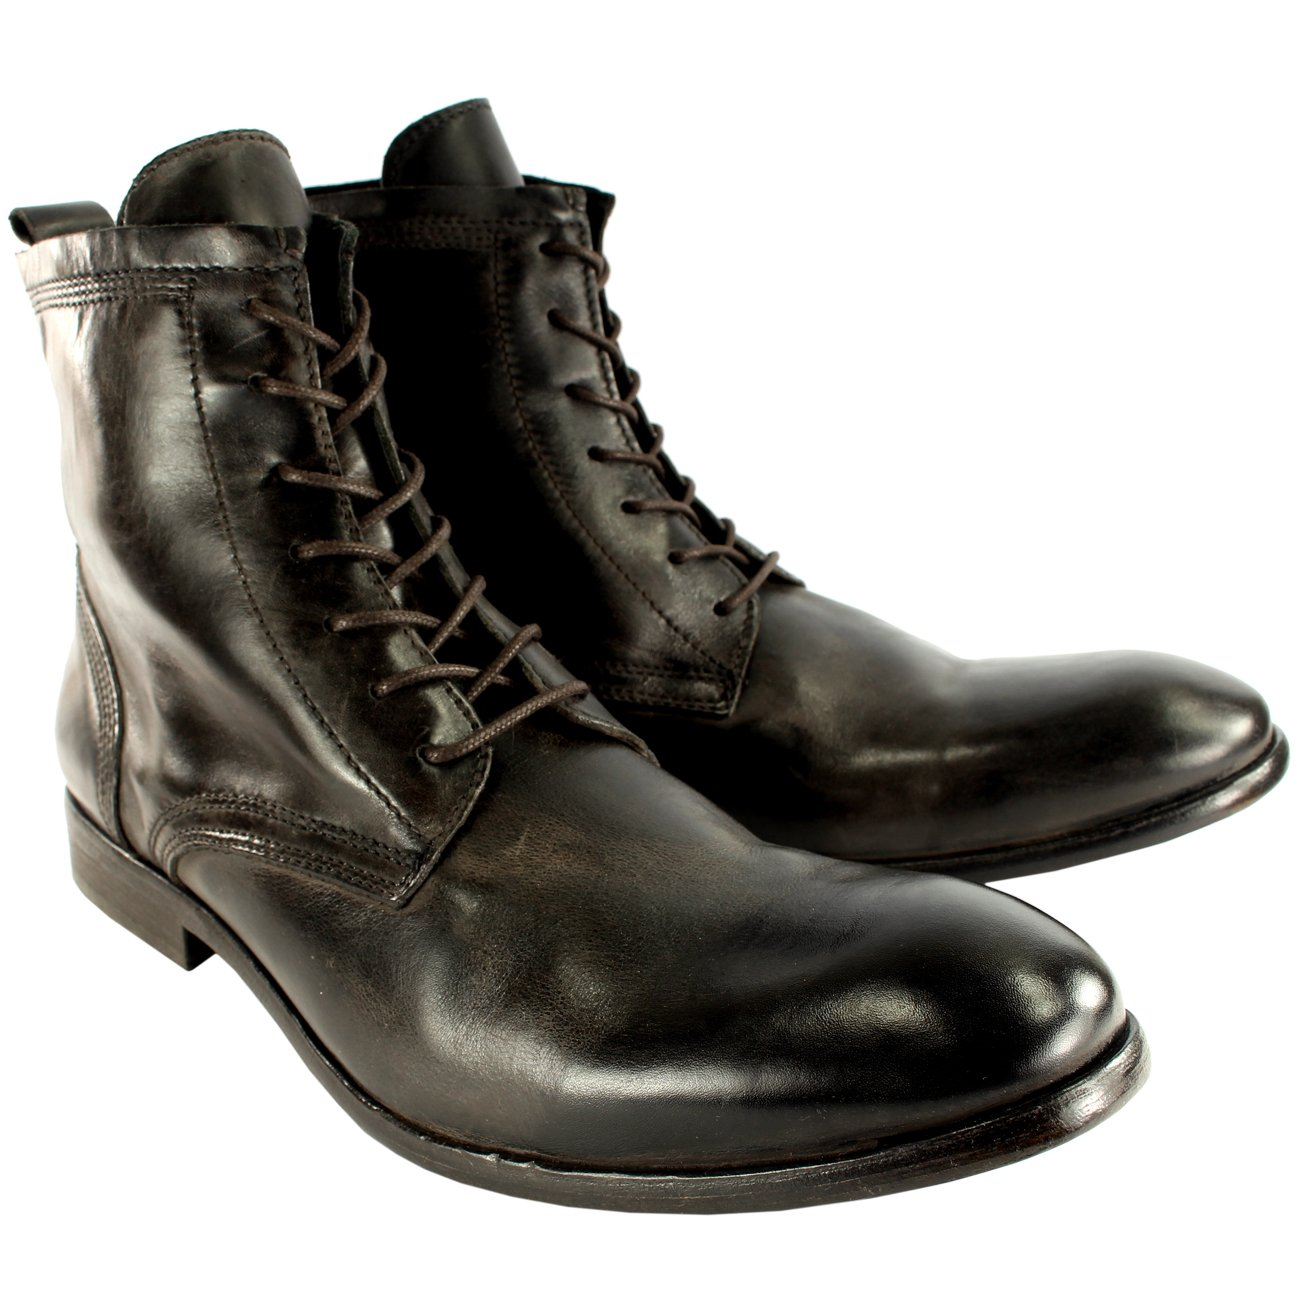 7bef45179563 Hudson Mens H Swathmore Leather Lace Up Smart Ankle Boots New Uk Sizes  7-13  Amazon.co.uk  Shoes   Bags